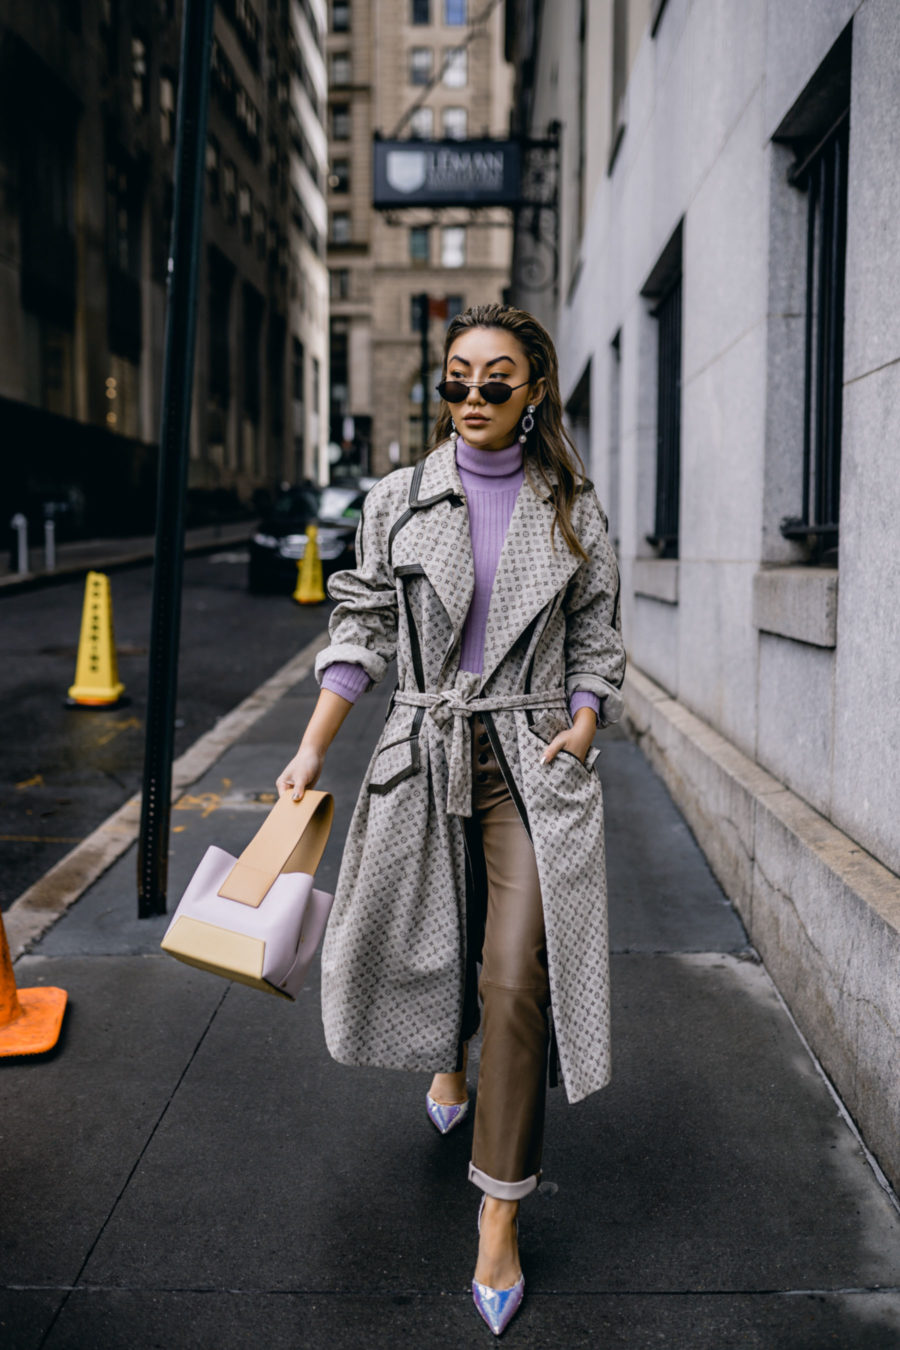 biggest street style trends of spring 2019, louis vuitton trench coat, trench coat trend // Notjessfashion.com